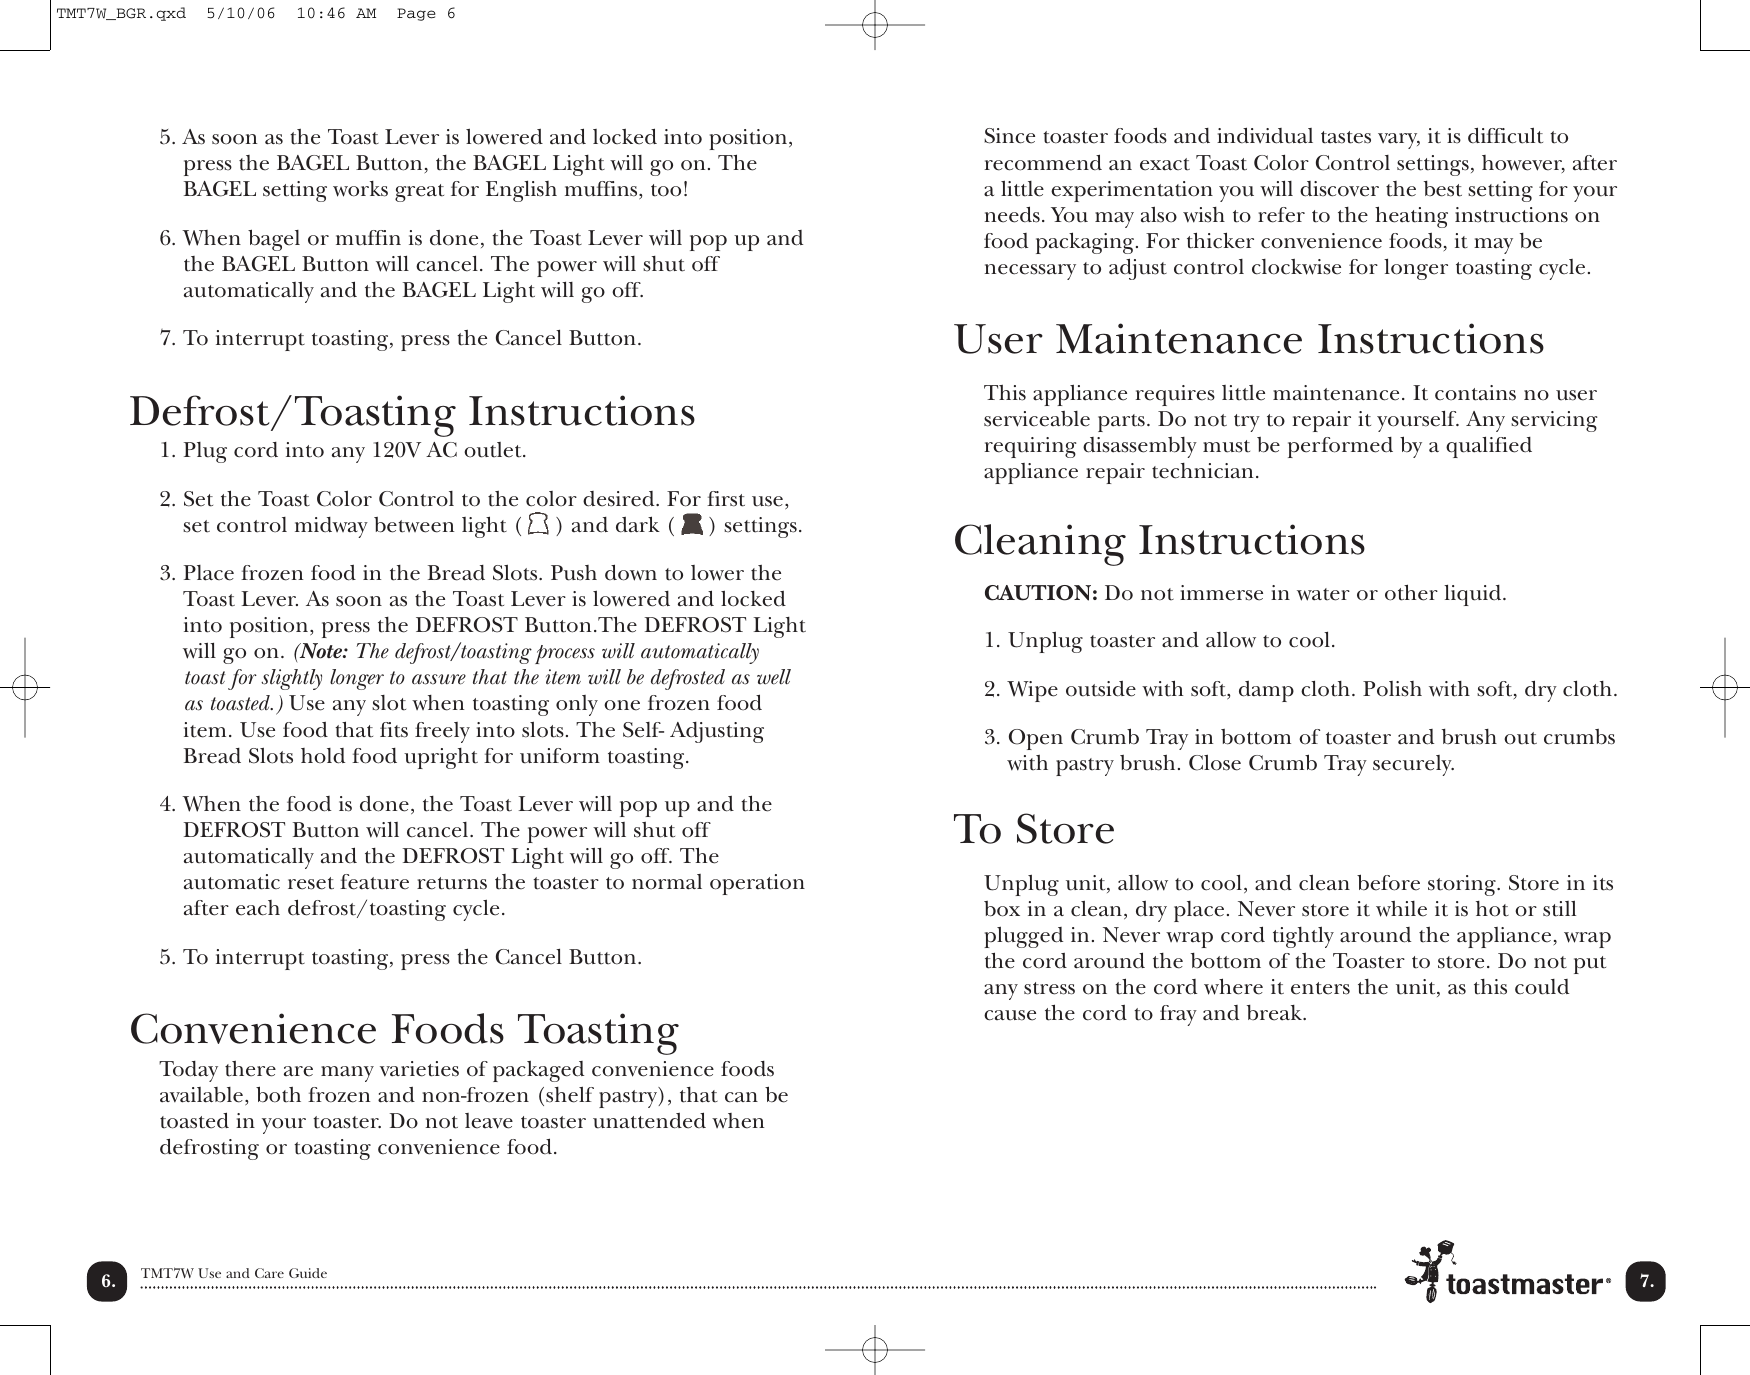 Page 7 of 12 - Toastmaster Toastmaster-Tmt7W-Users-Manual- T2050 Manual  Toastmaster-tmt7w-users-manual